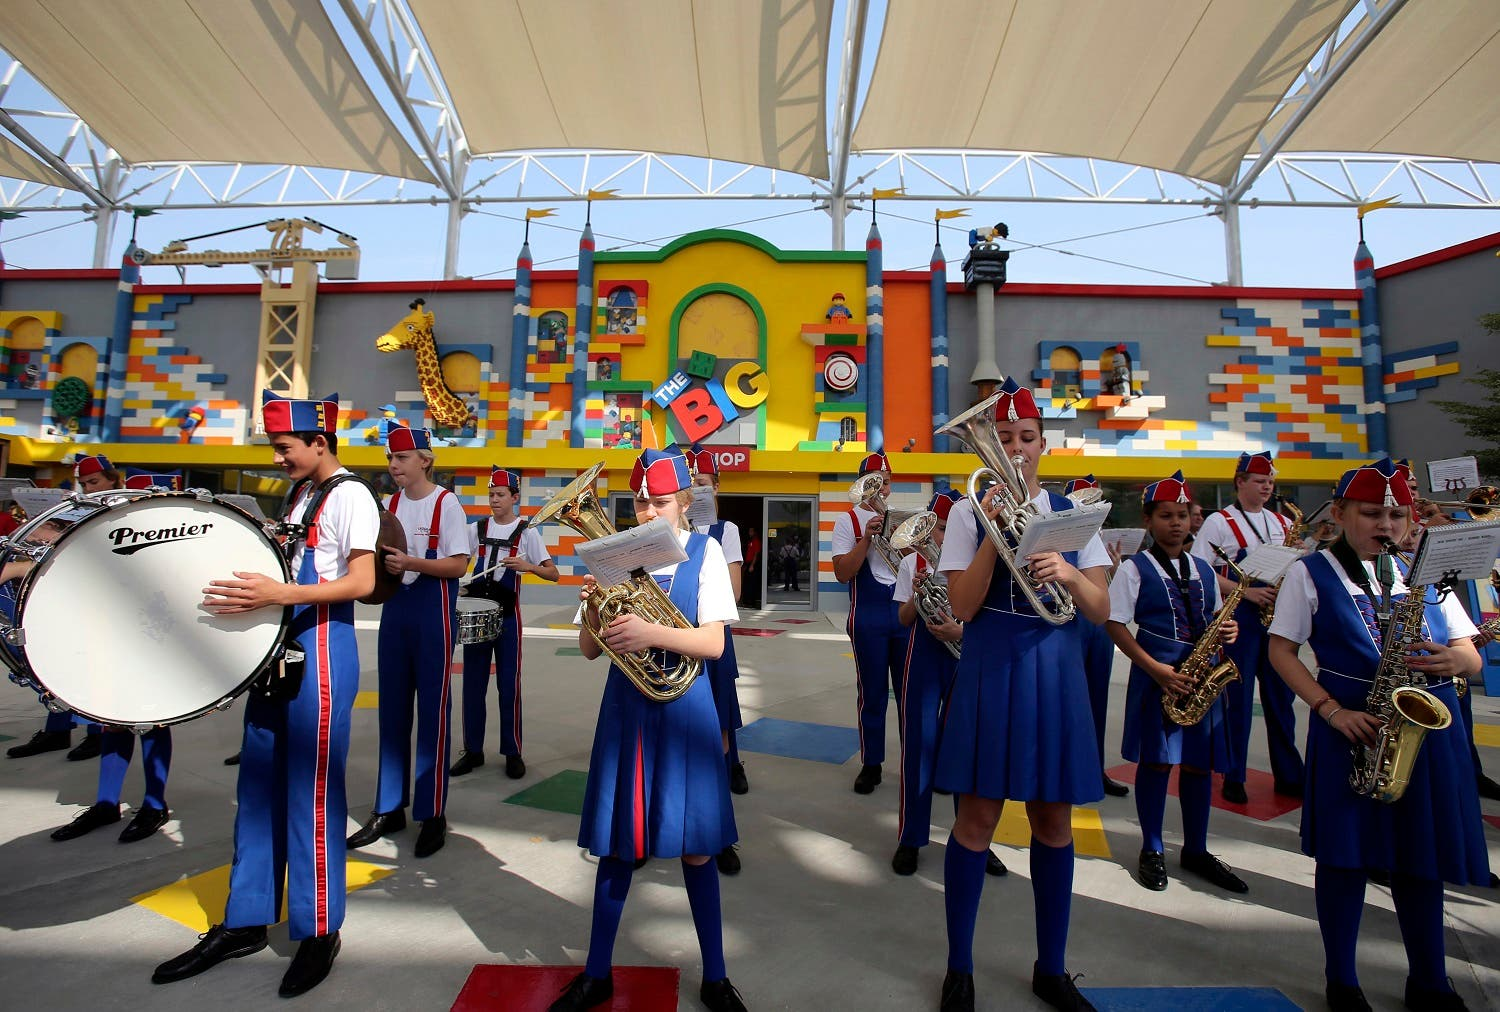 A band plays music during the opening of Legoland Dubai, part of the larger Dubai Parks & Resorts project, in Dubai, United Arab Emirates, Monday, Oct. 27, 2016 (Photo: AP/Kamran Jebreili)